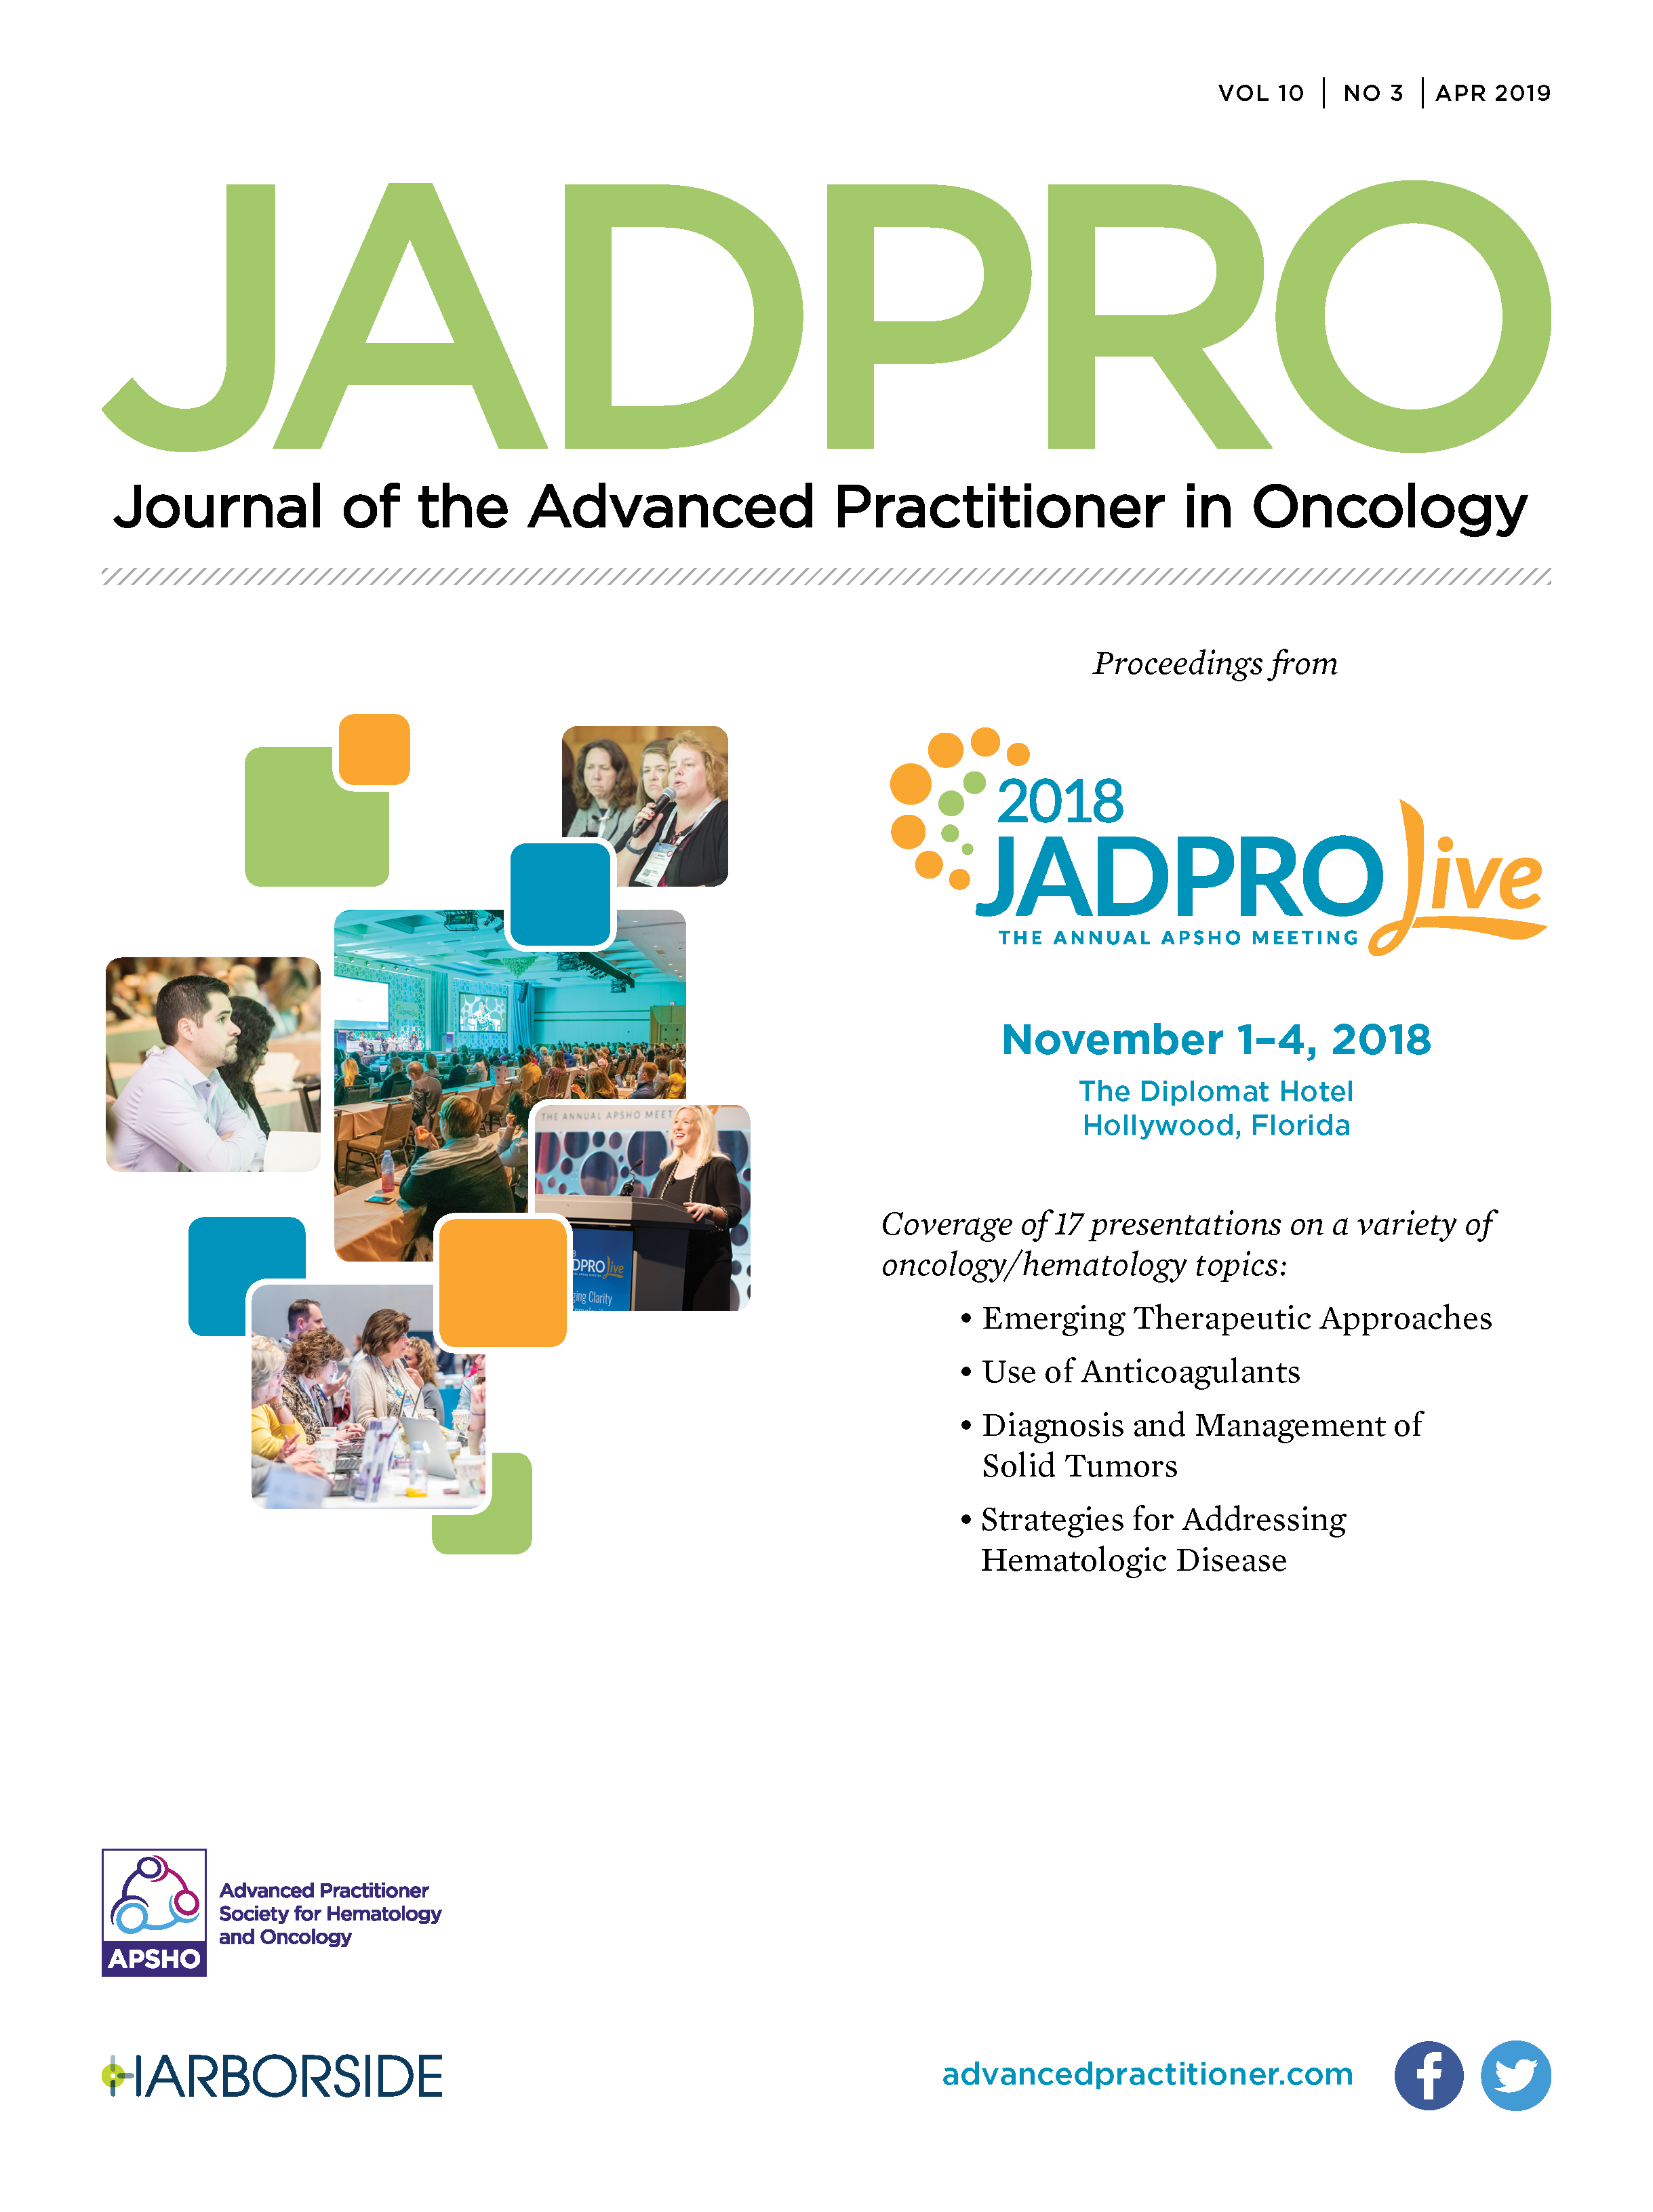 Previous Issues - JADPRO